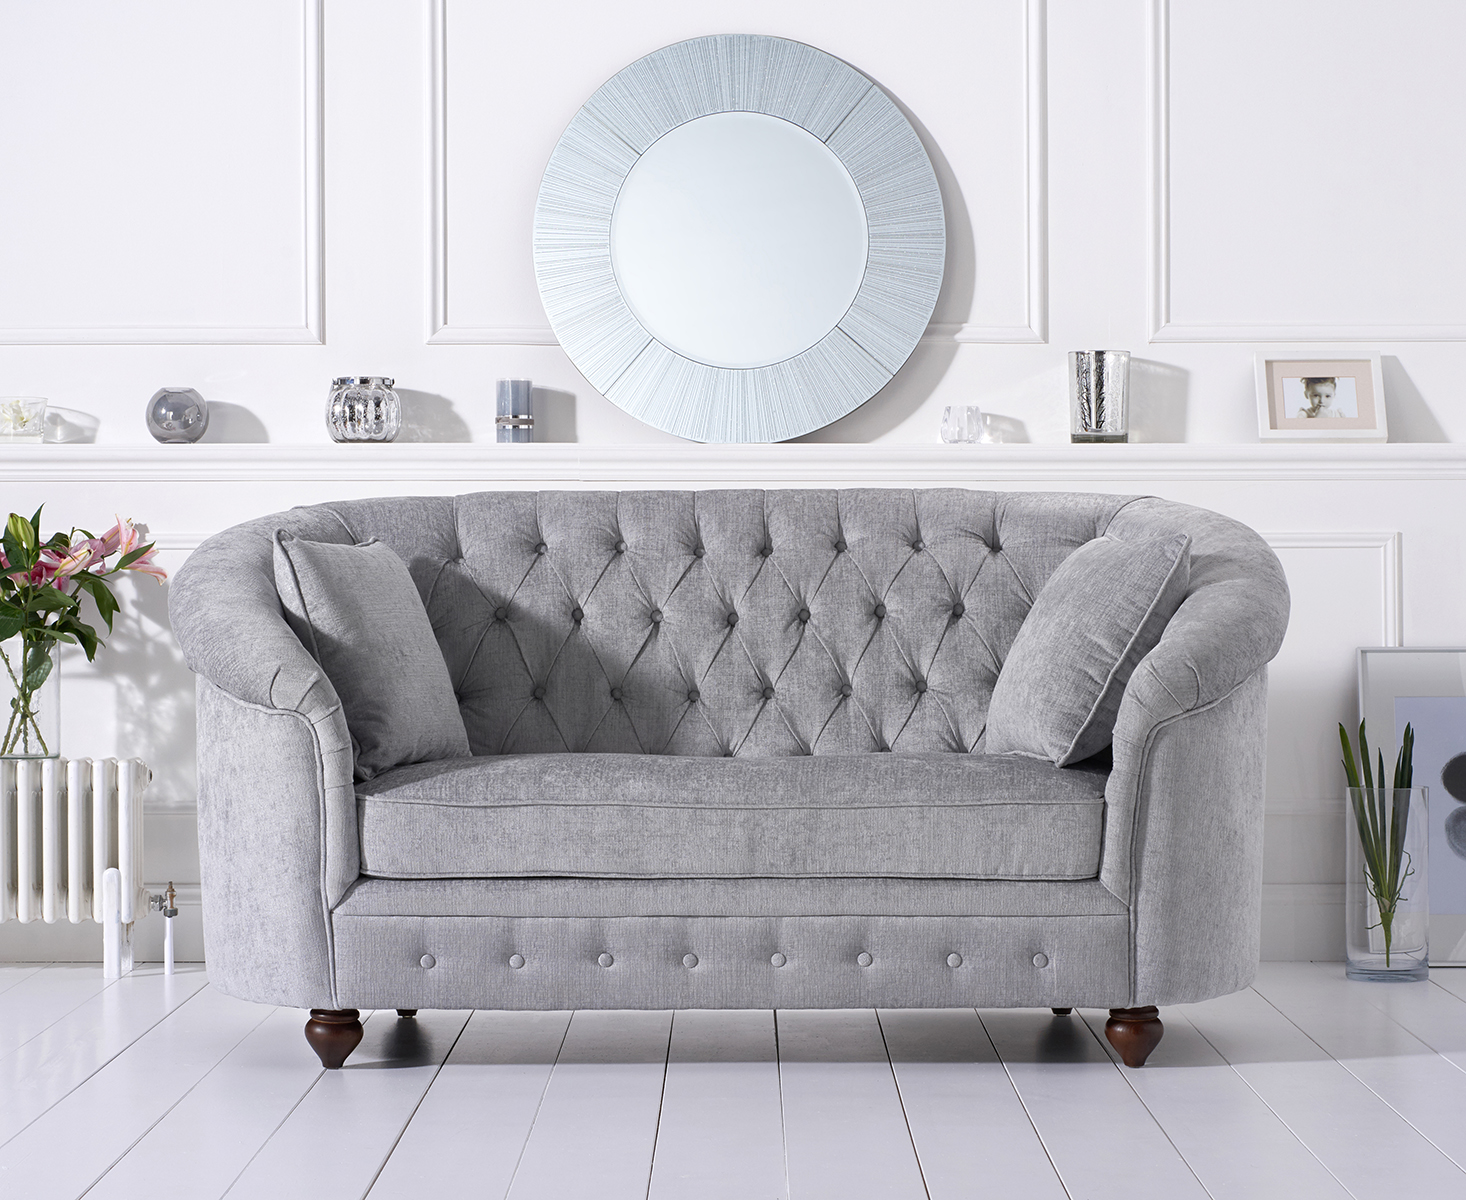 Photo of Chloe chesterfield grey plush fabric two-seater sofa